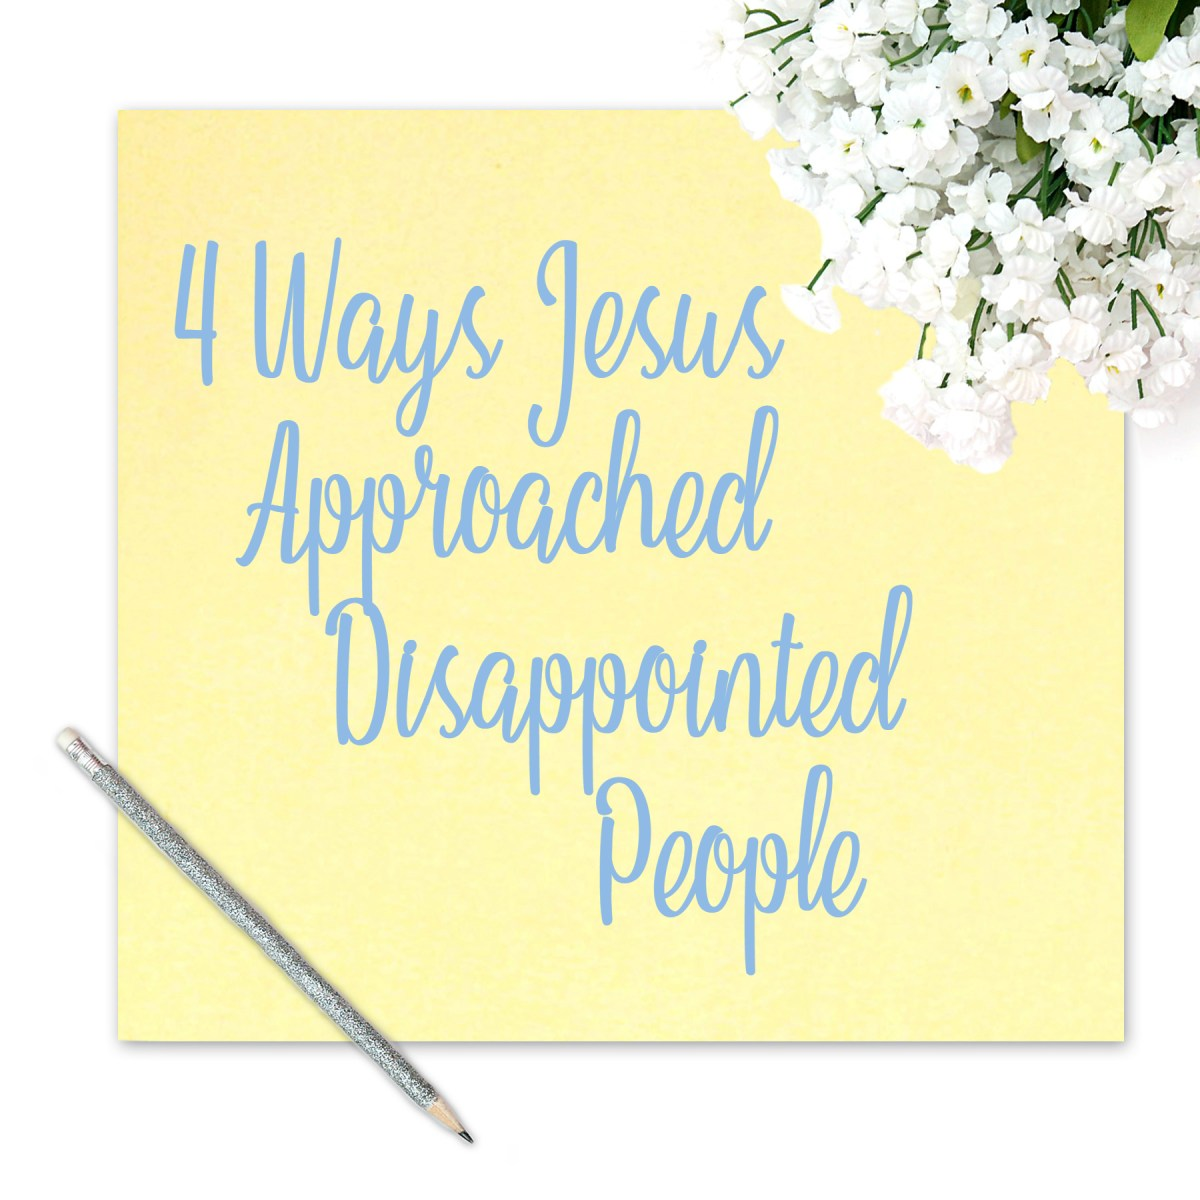 4 Ways Jesus Approached Disappointed People